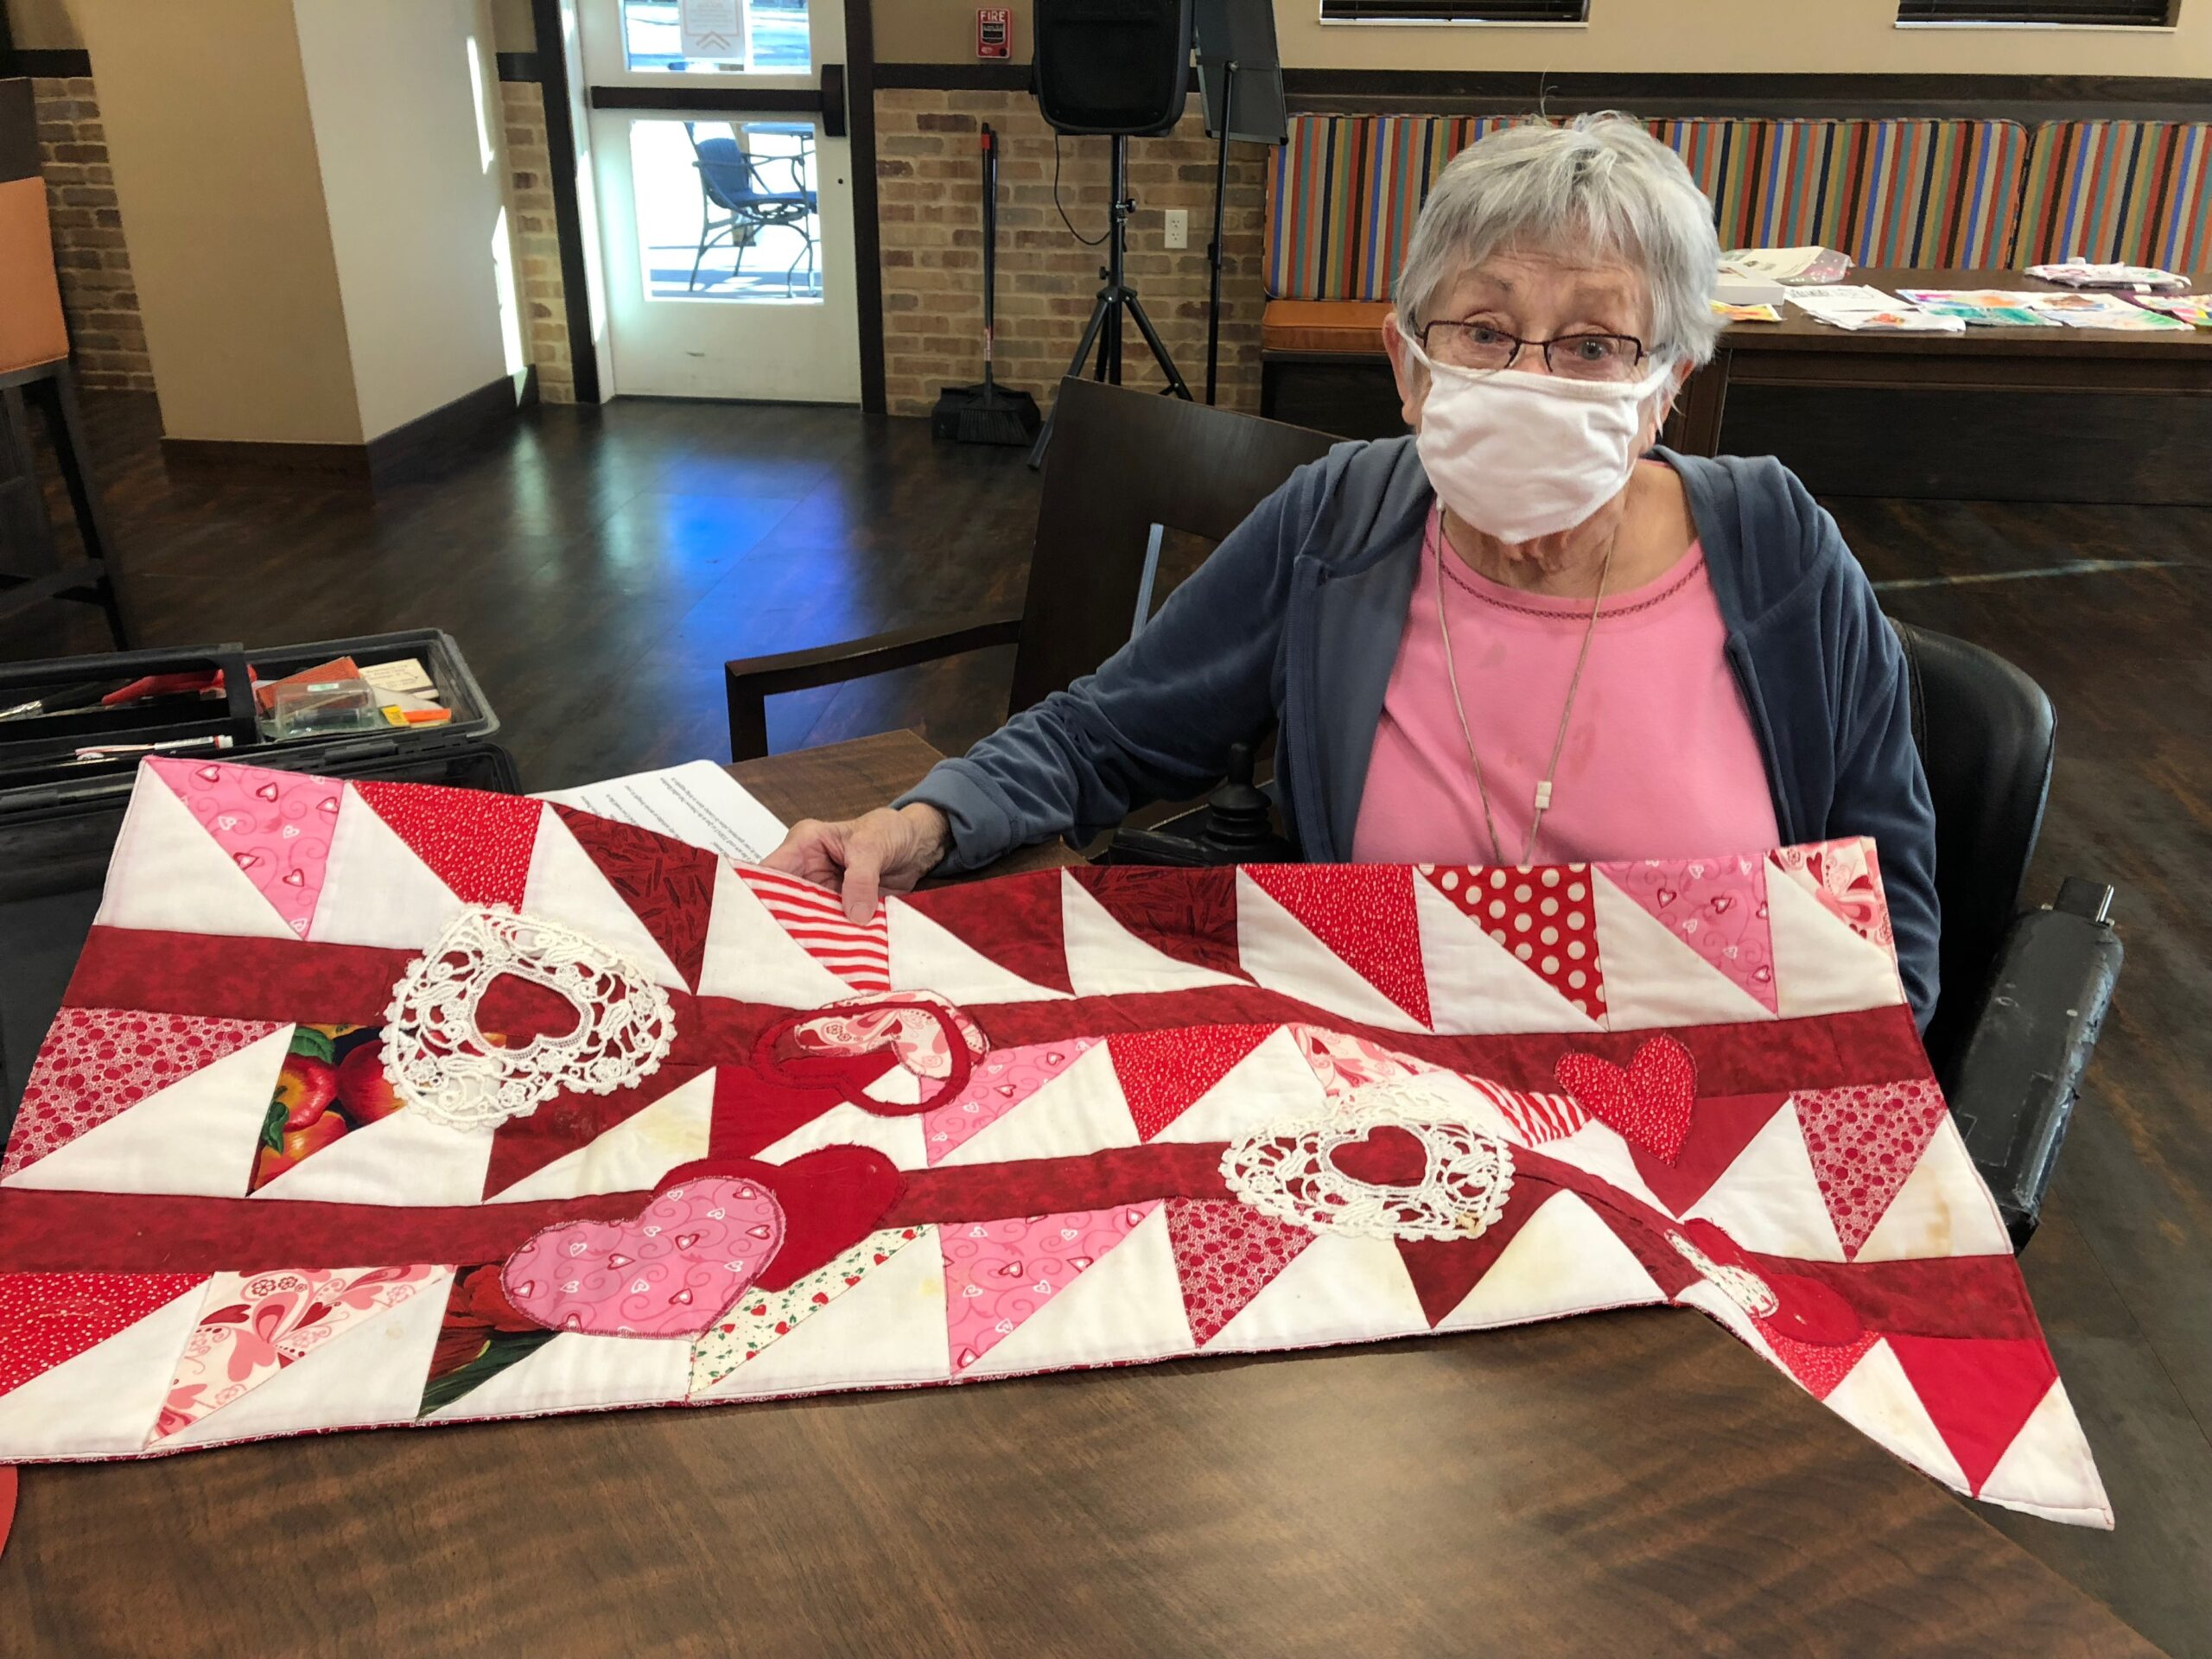 Juanita's Heart Quilt- Residents gathered to do a fun craft day of drawing on Heart Shaped Rainbow Scratch Paper. During the craft, Juanita brought down her Heart Quilt she had made to inspire other's to have fun with their art and creativity that they do!